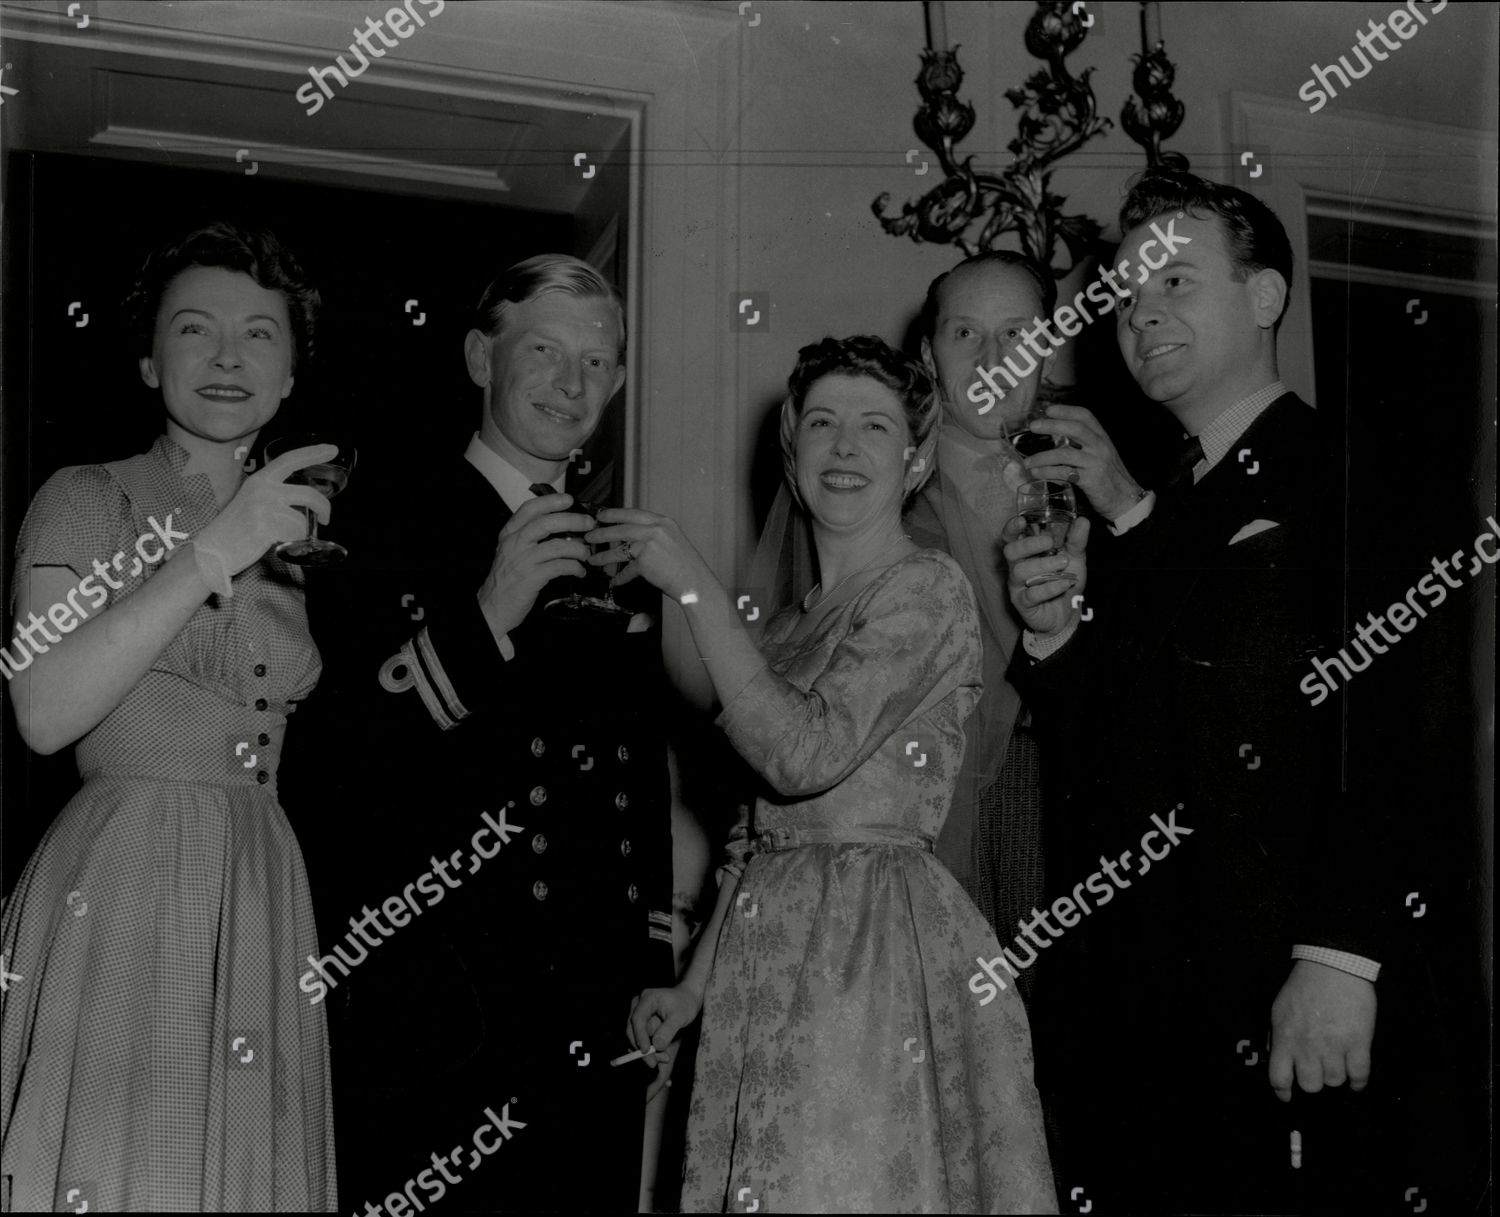 6e8616c3 ... Lieut Michael Charles R.n Left To Right Miss Thelma Hughes Sally The  Bride And The Bridegroom Producer Mr Archie Campbell And Derek Hart. Stock  Image by ...